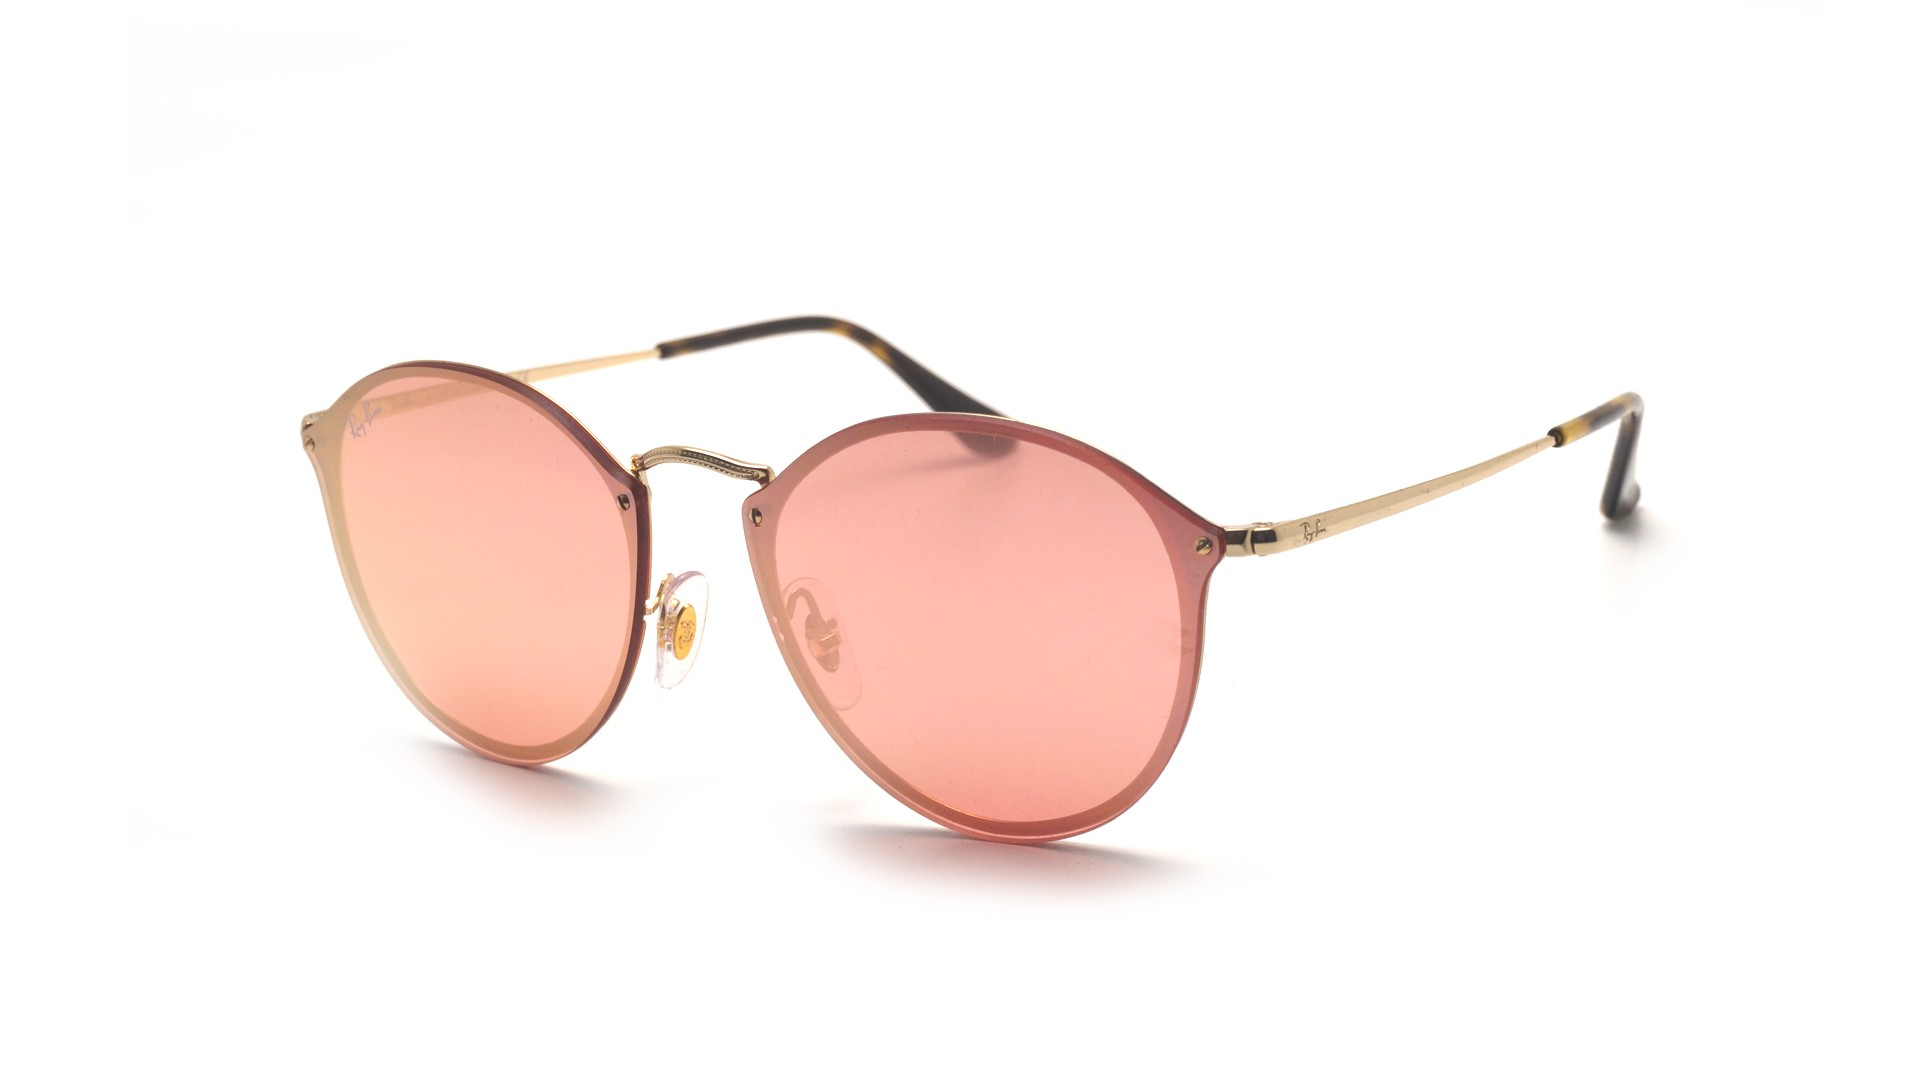 5d1c3aacc60da ... best price sunglasses ray ban round blaze gold rb3574n 001 e4 59 14  large mirror a403c ...